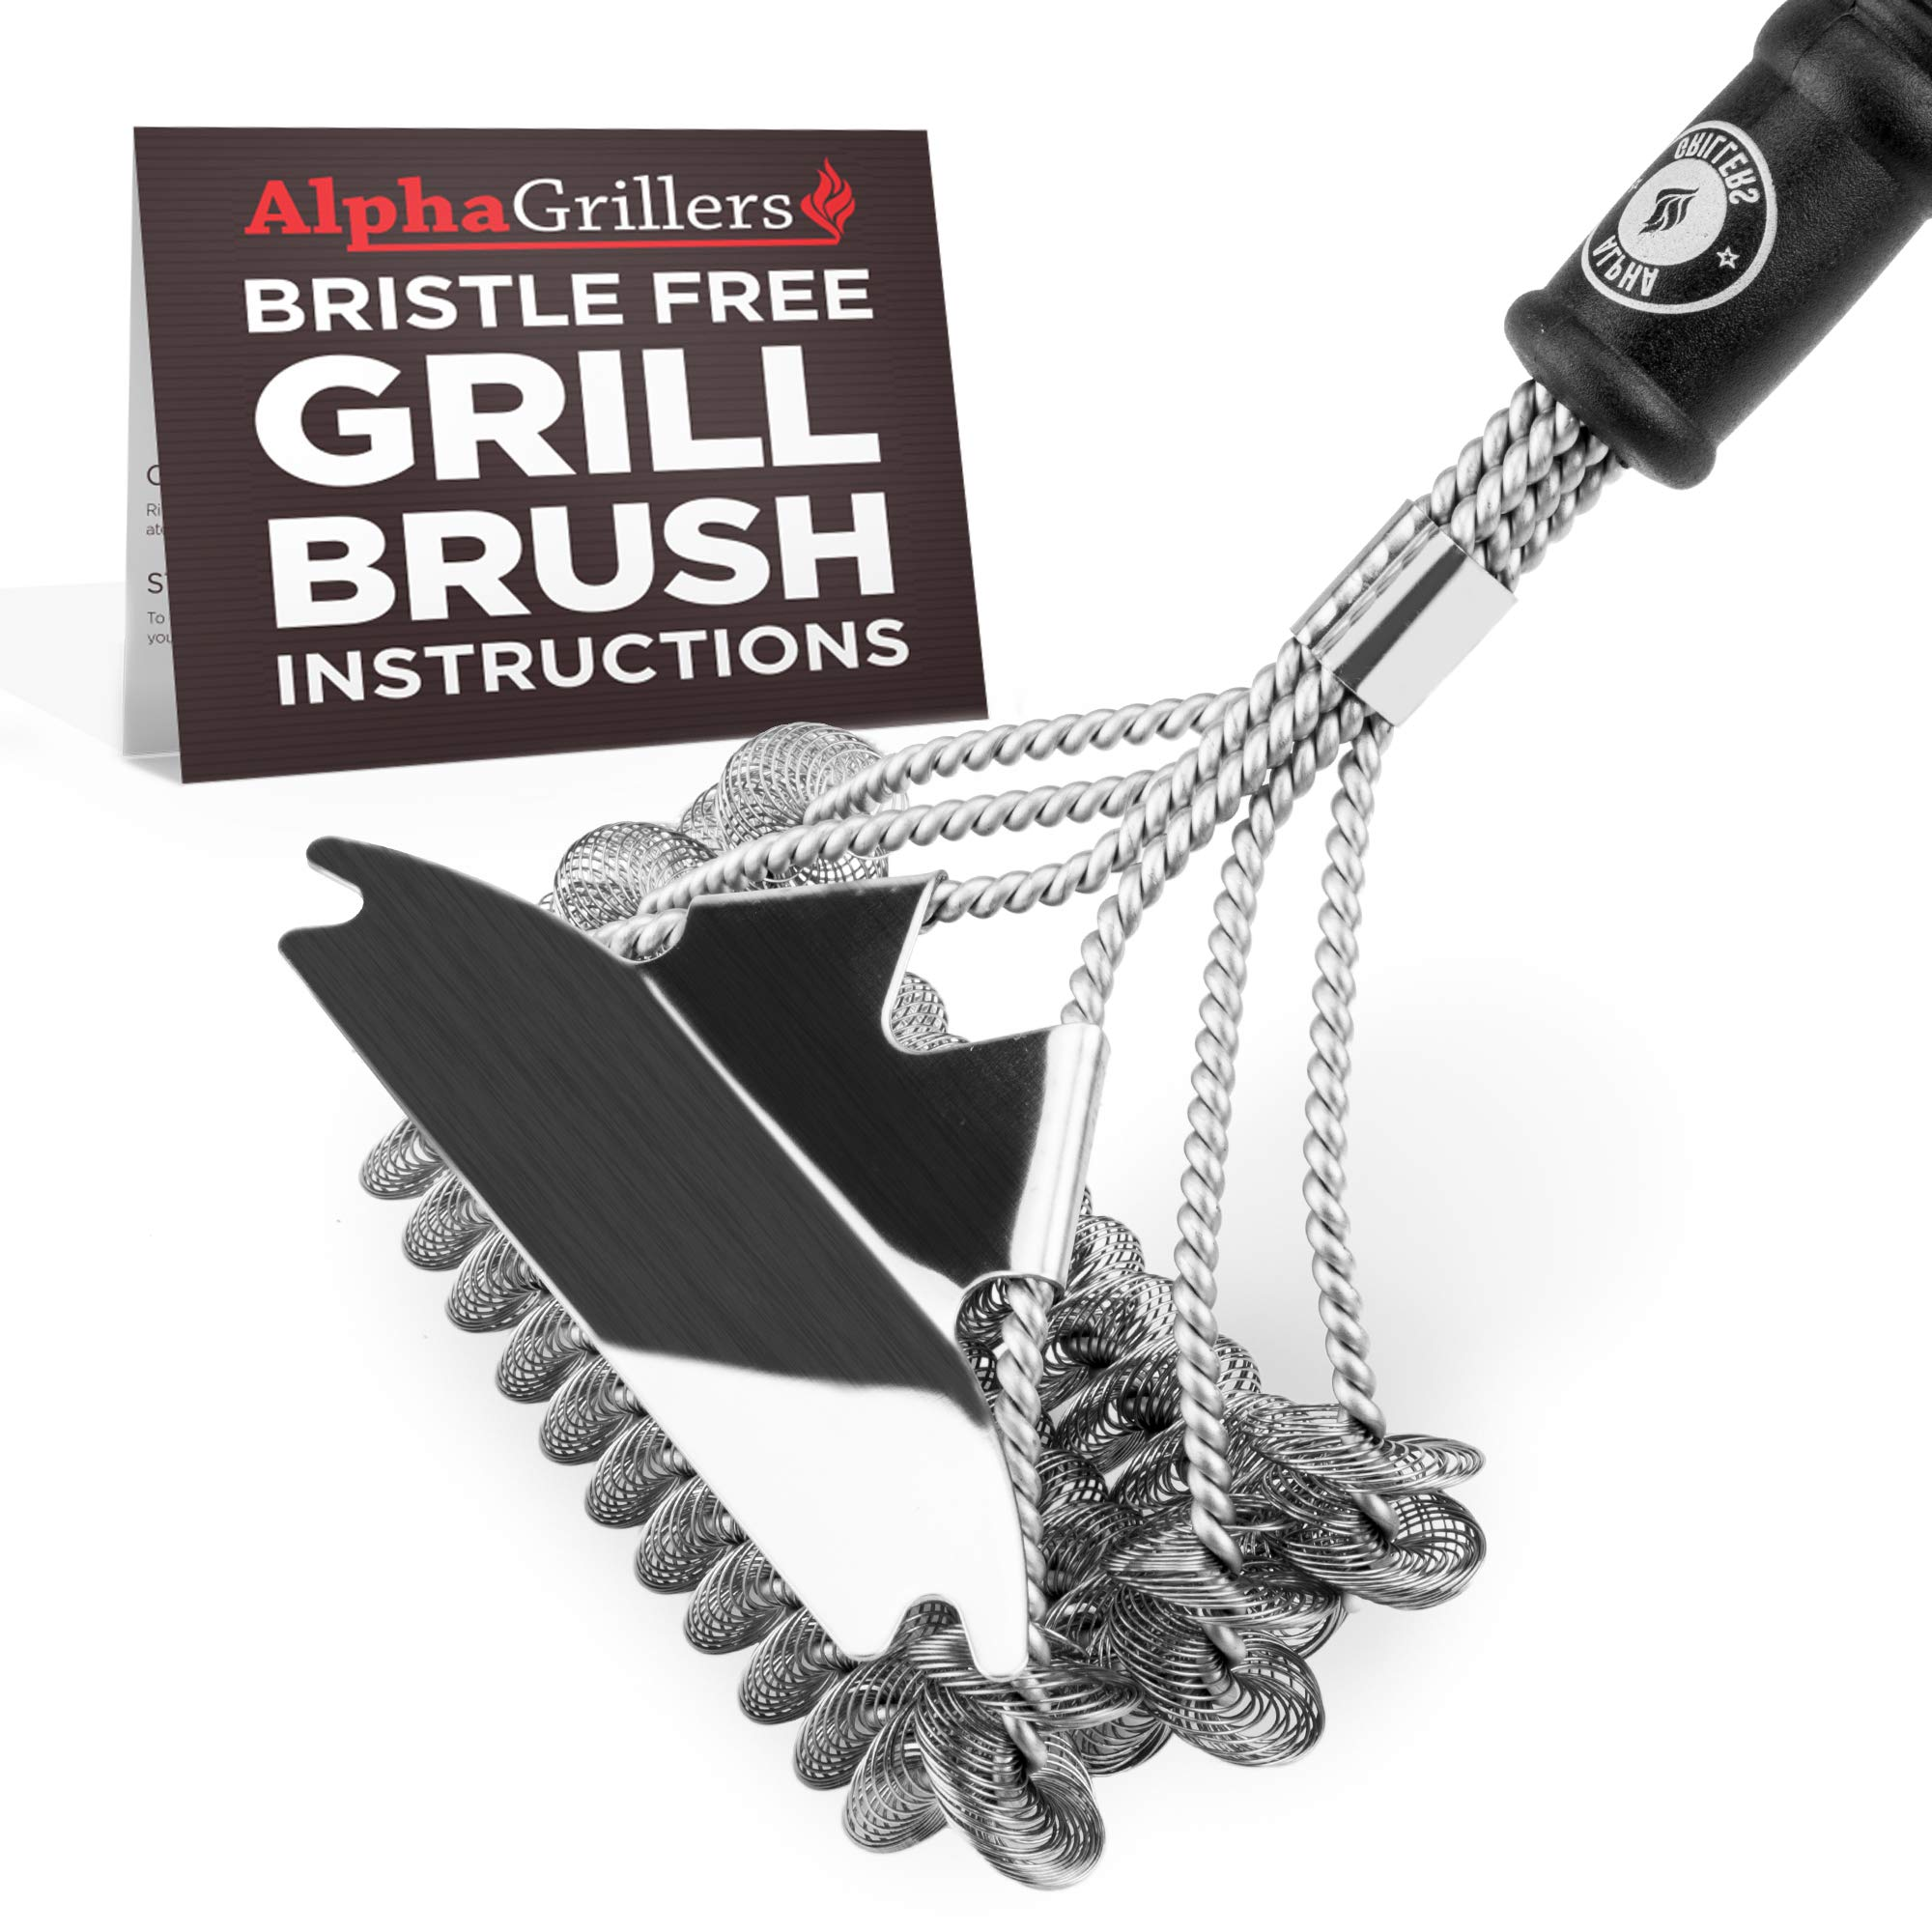 Alpha Grillers Grill Brush Bristle Free. Best Safe BBQ Cleaner with Extra Wide Scraper. Perfect 18 Inch Stainless Steel Tools for All Grill Types, Including Weber. Ideal Barbecue Accessories by Alpha Grillers (Image #8)